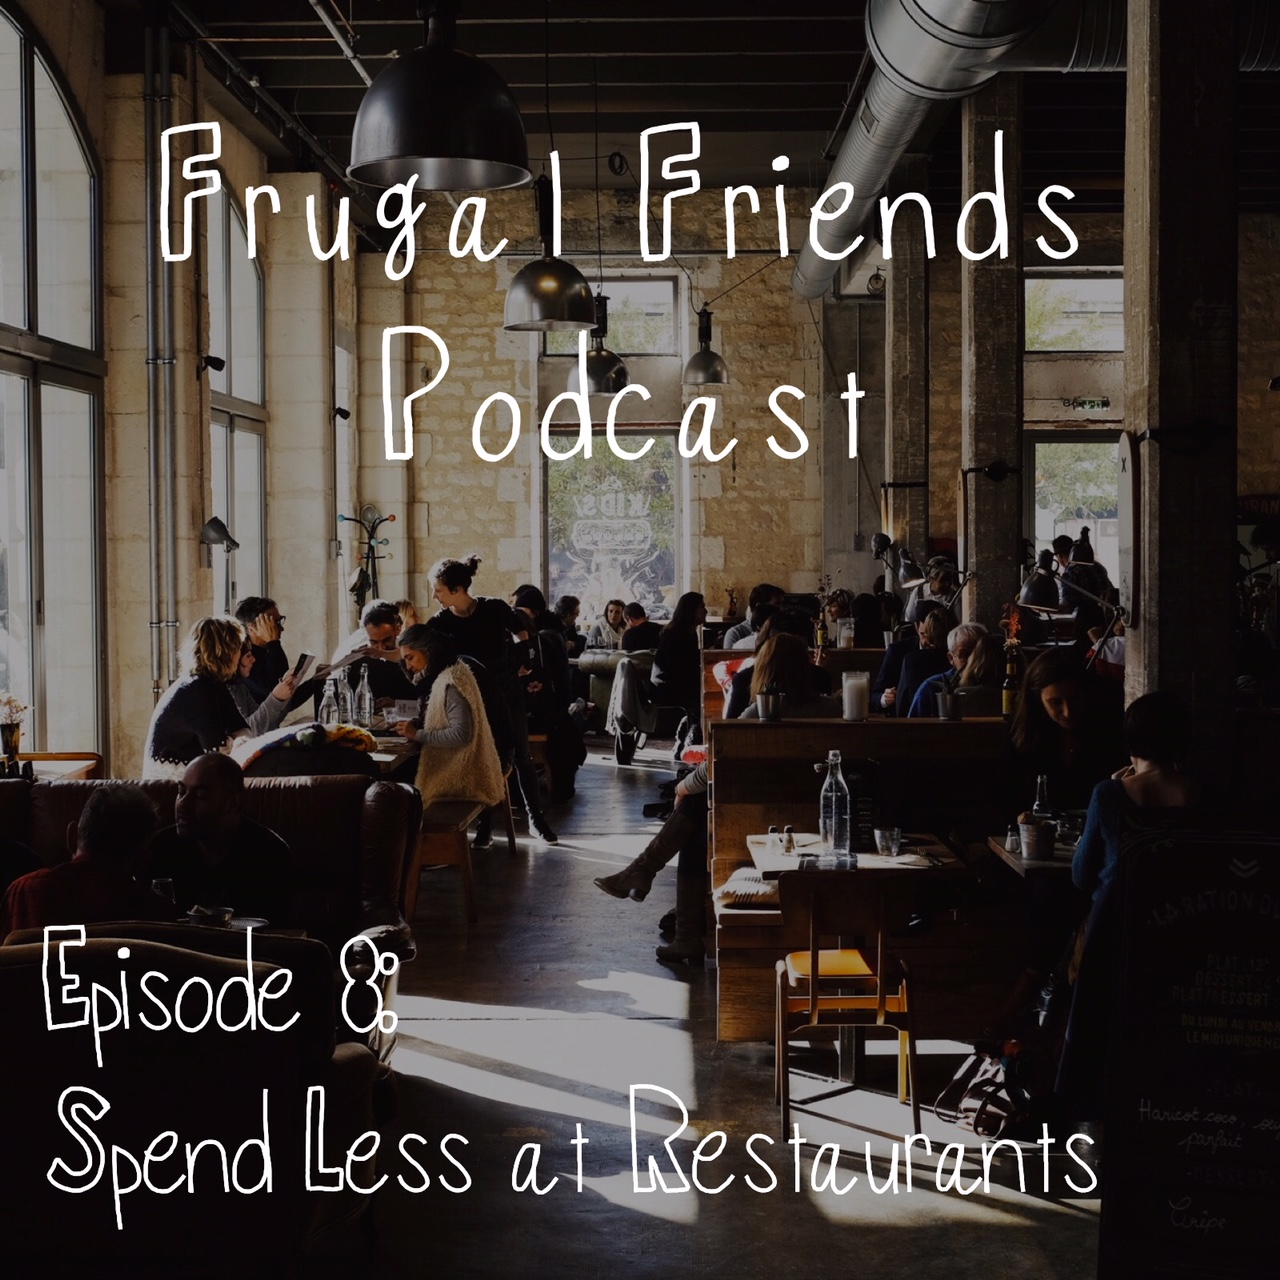 Episode 8: Spend Less at Restaurants